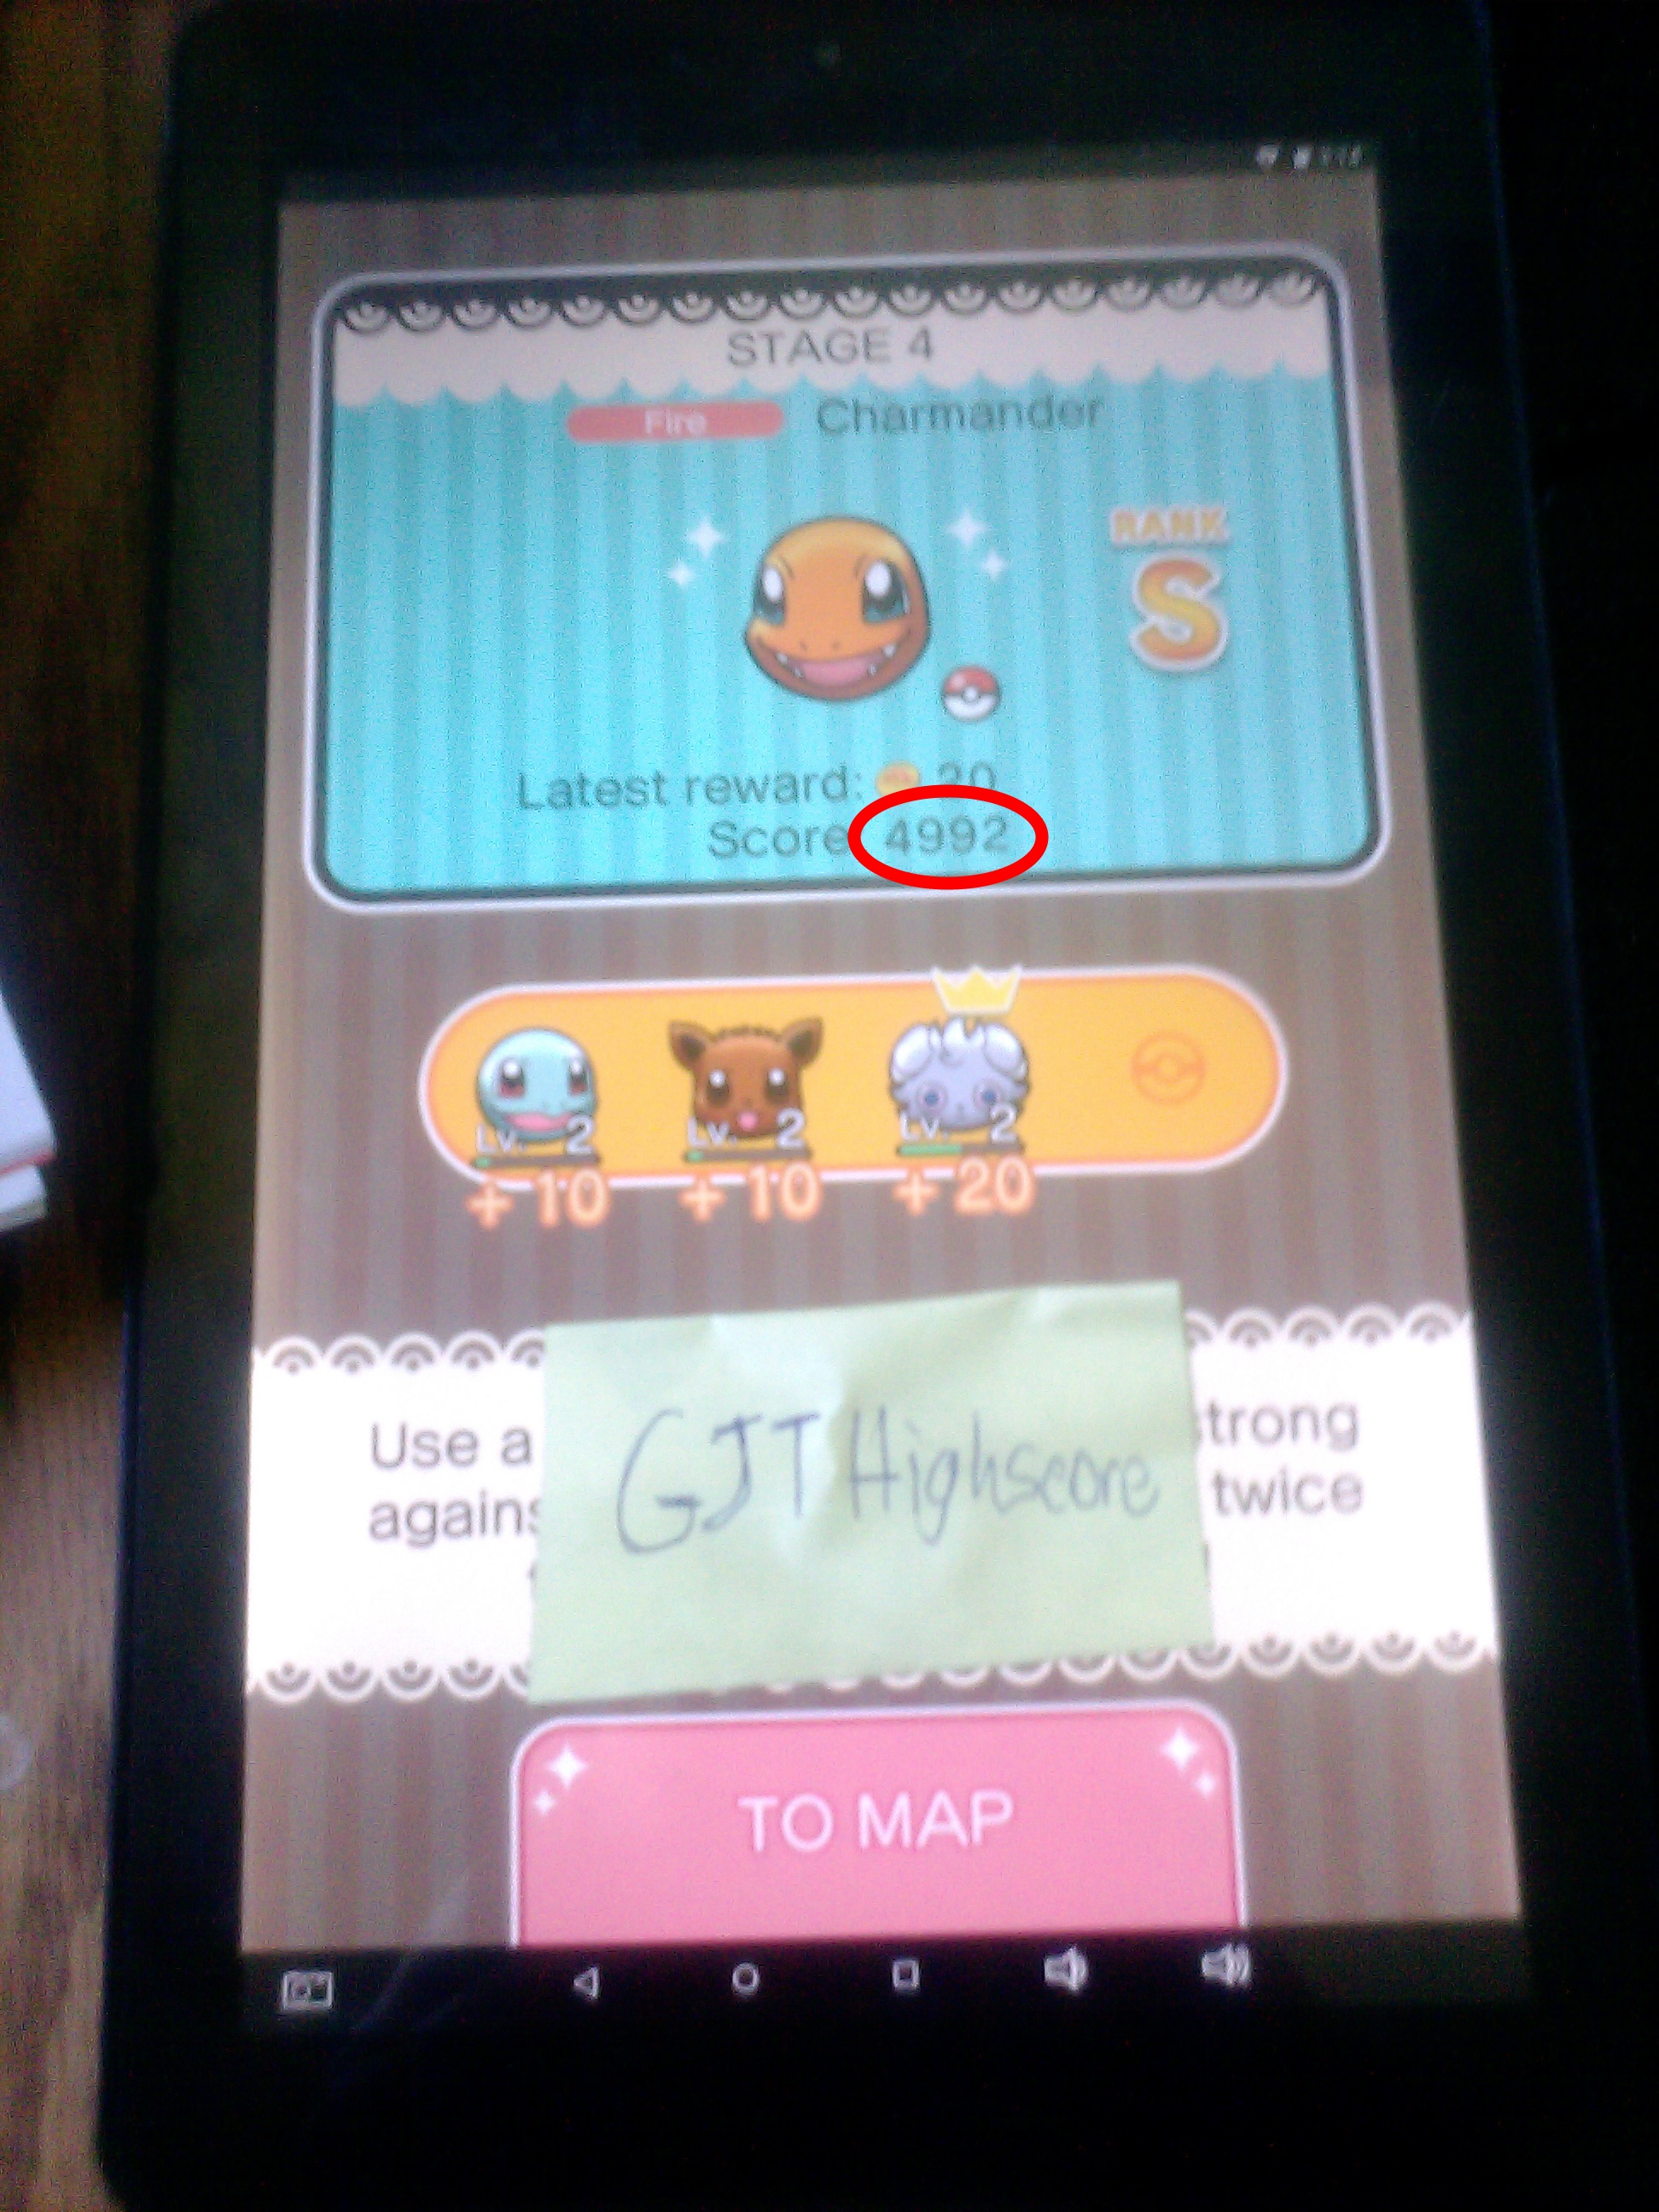 GJTHighScore: Pokemon Shuffle Mobile: Stage 004 (Android) 4,992 points on 2017-07-15 19:30:05